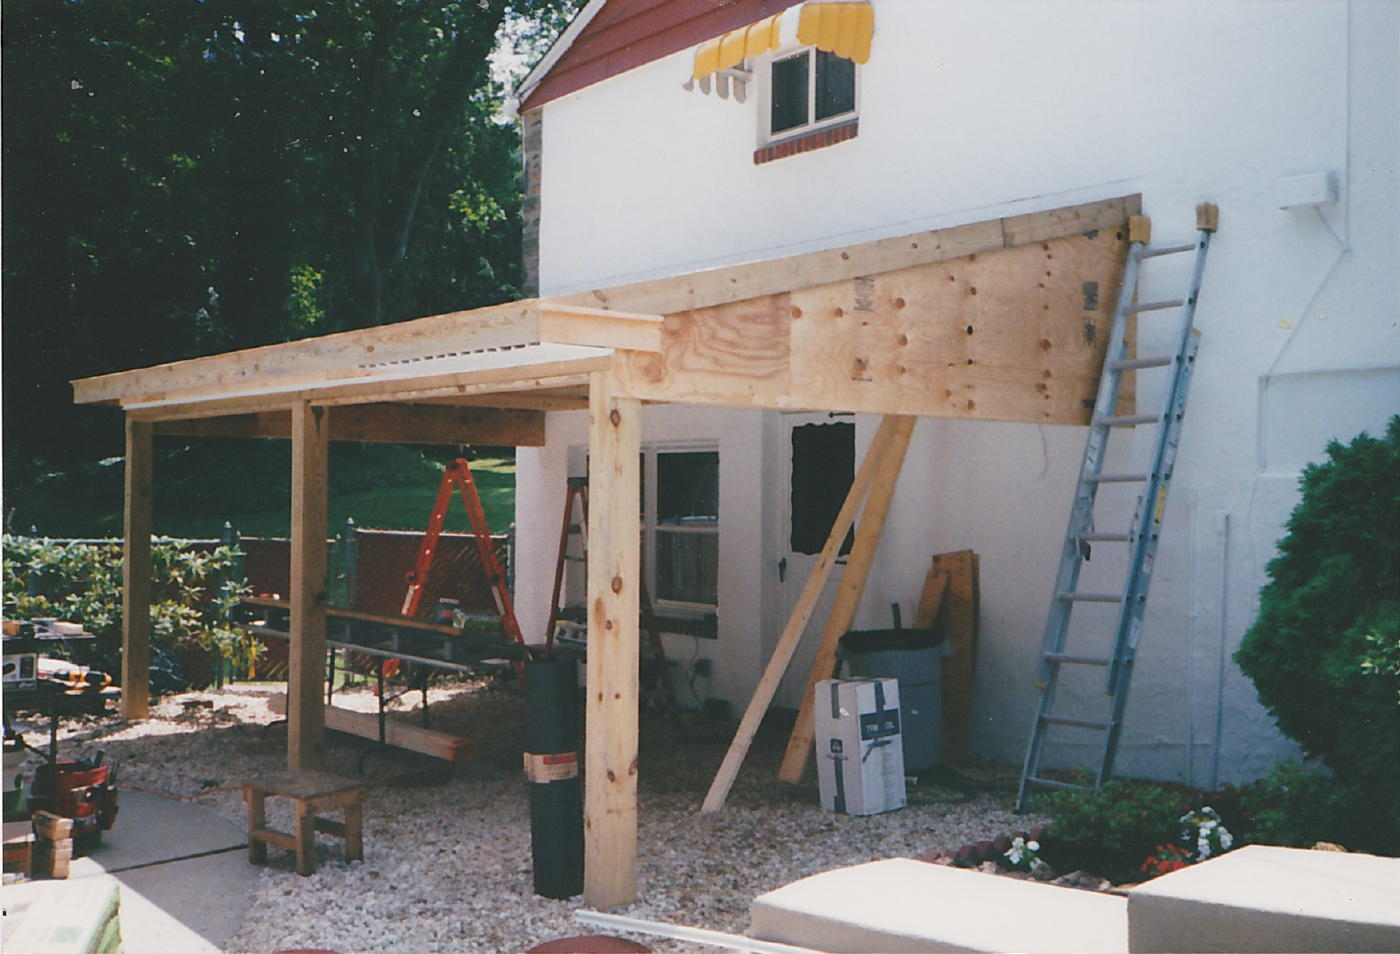 What Would You Call A Roof Over A Patio? - Architecture ... on Roof For Patio Ideas id=46840